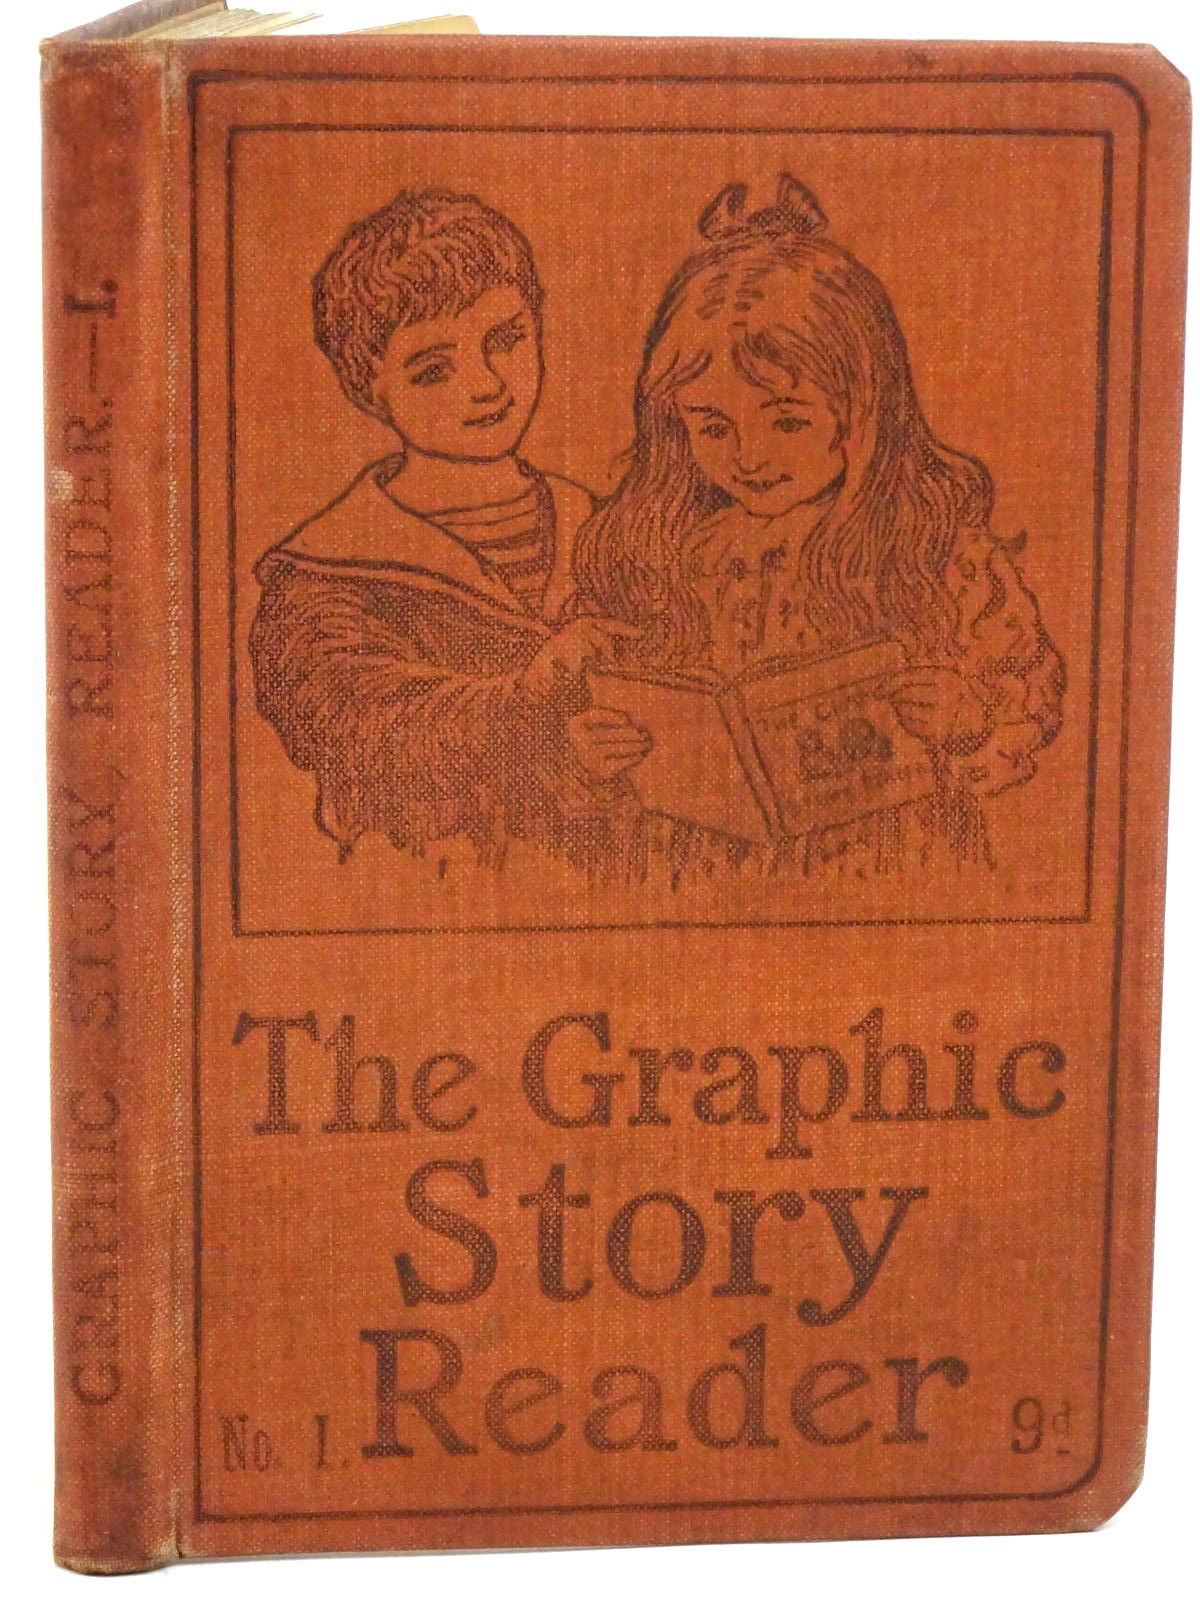 Photo of THE GRAPHIC STORY READER BOOK 1 illustrated by Wain, Louis